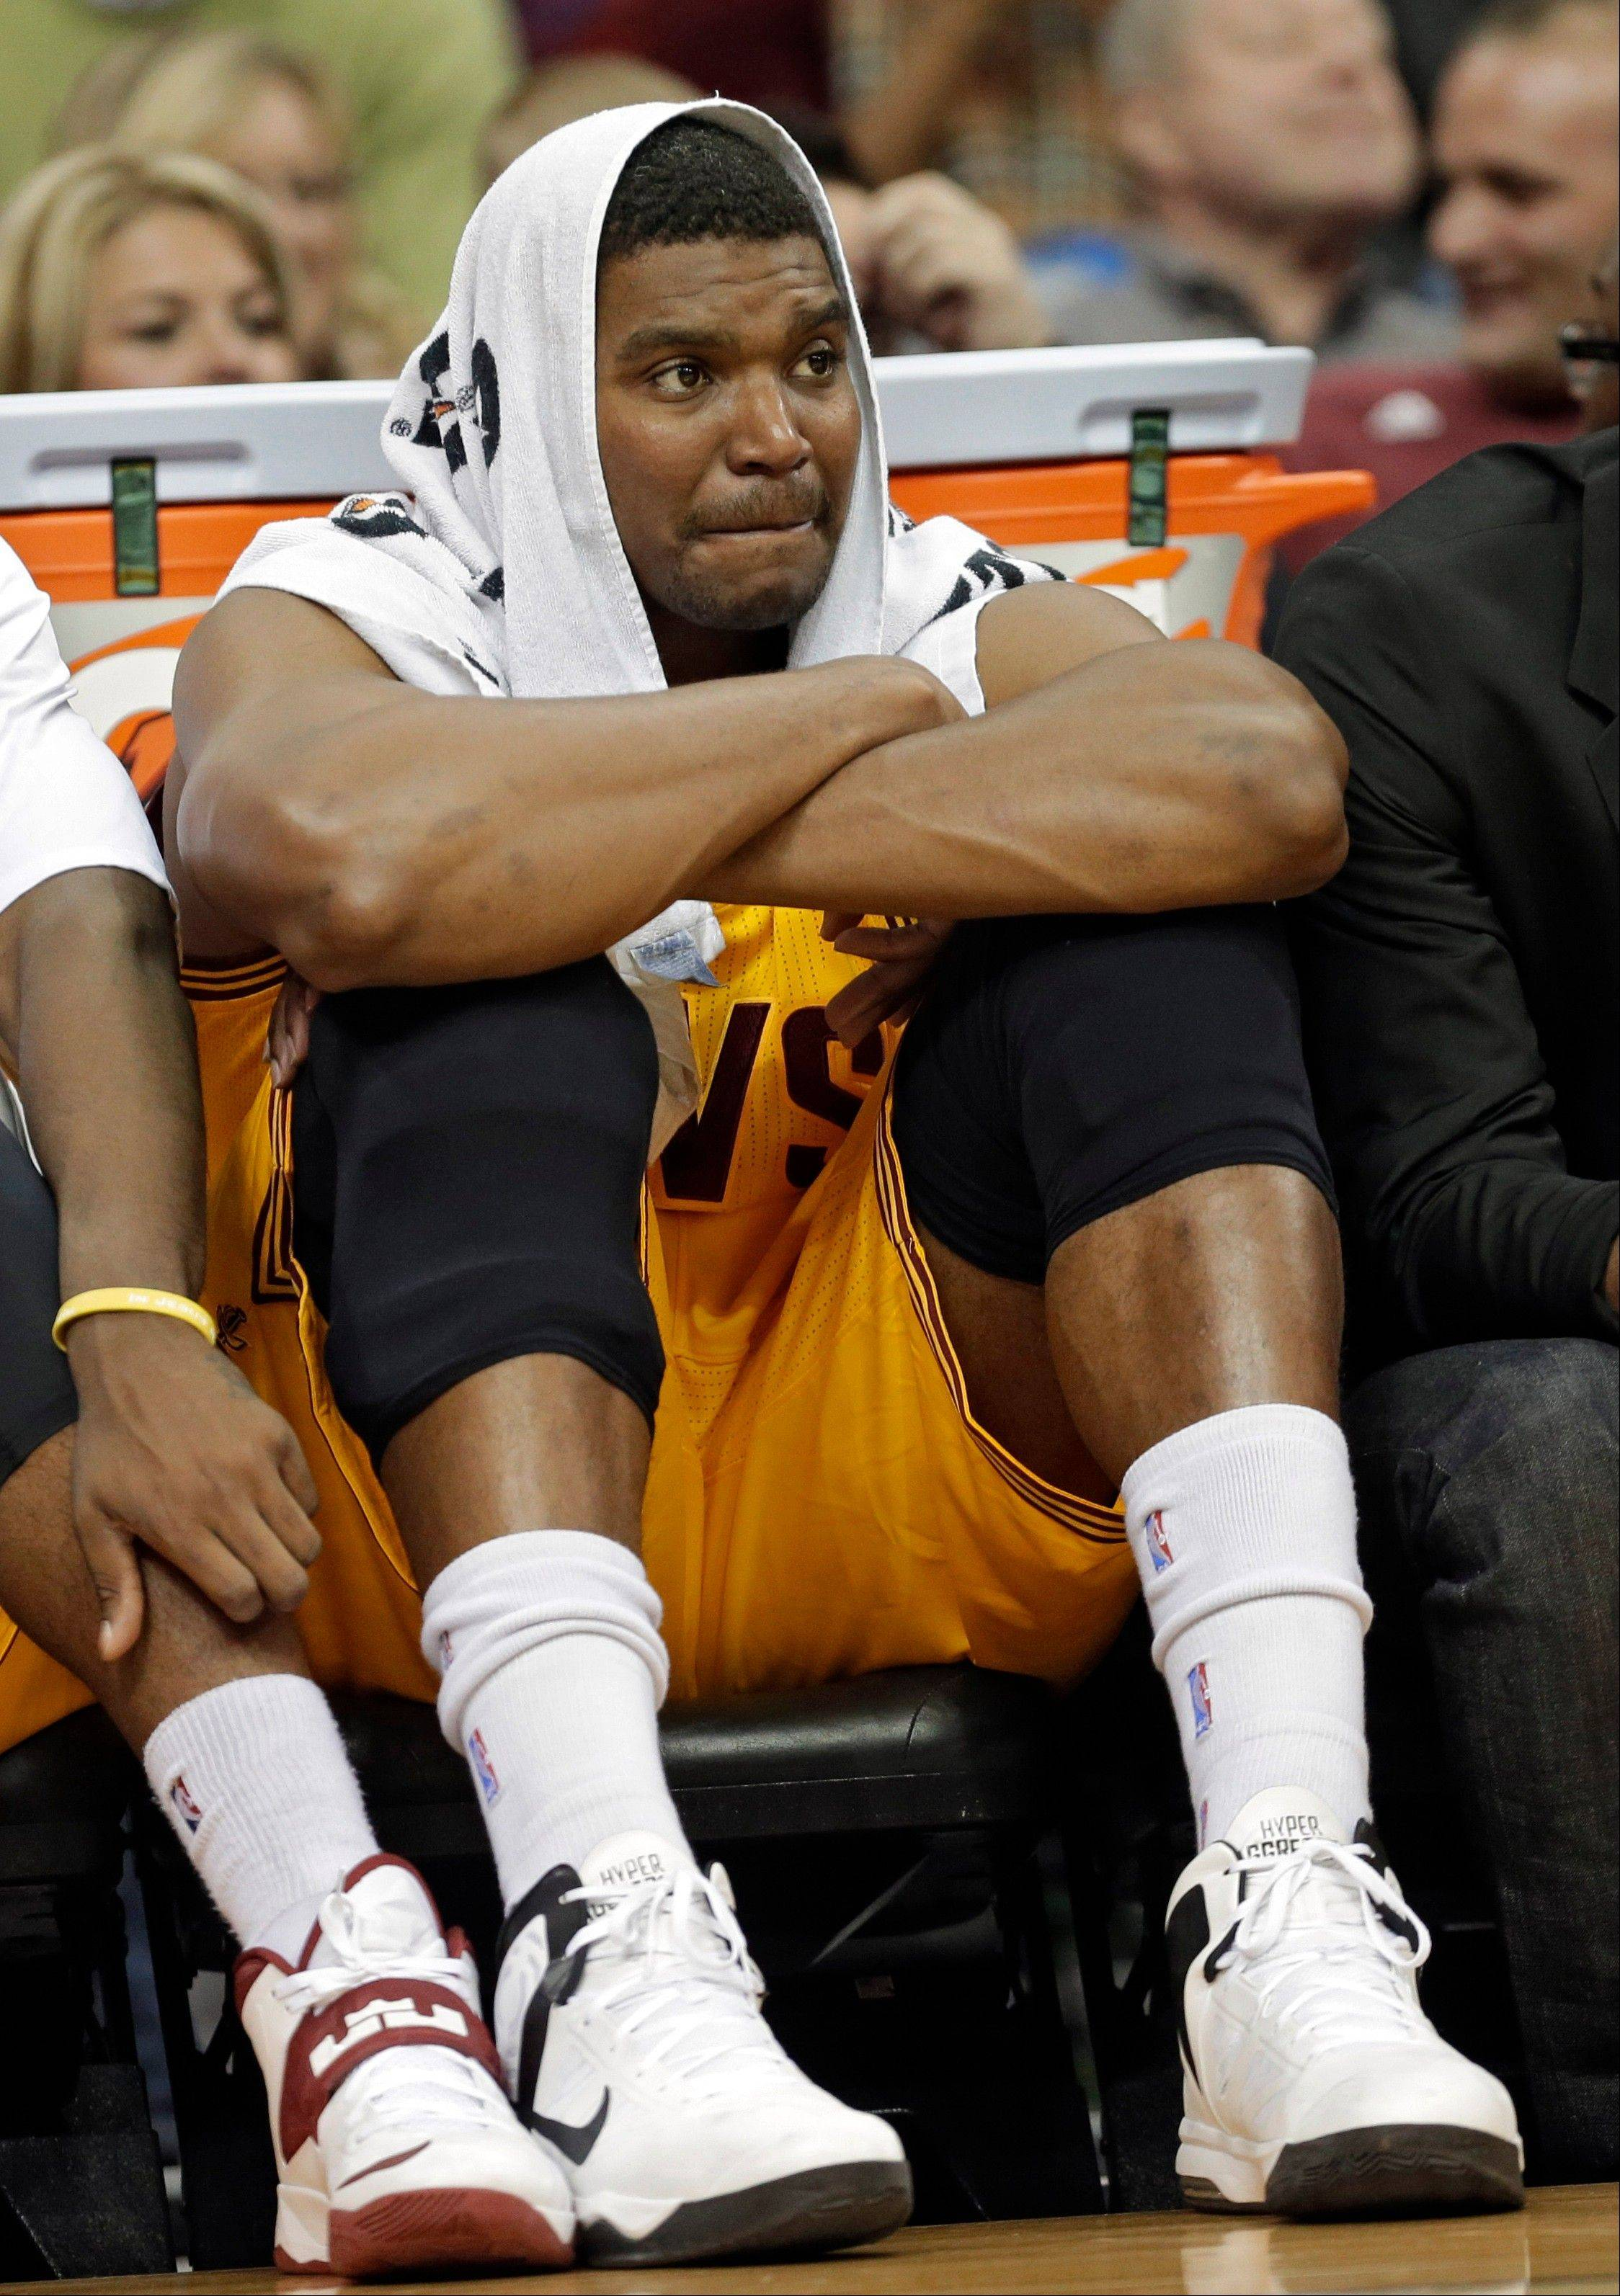 Andrew Bynum, who was released by the Bulls before ever donning a uniform, has been signed by the Indiana Pacers.